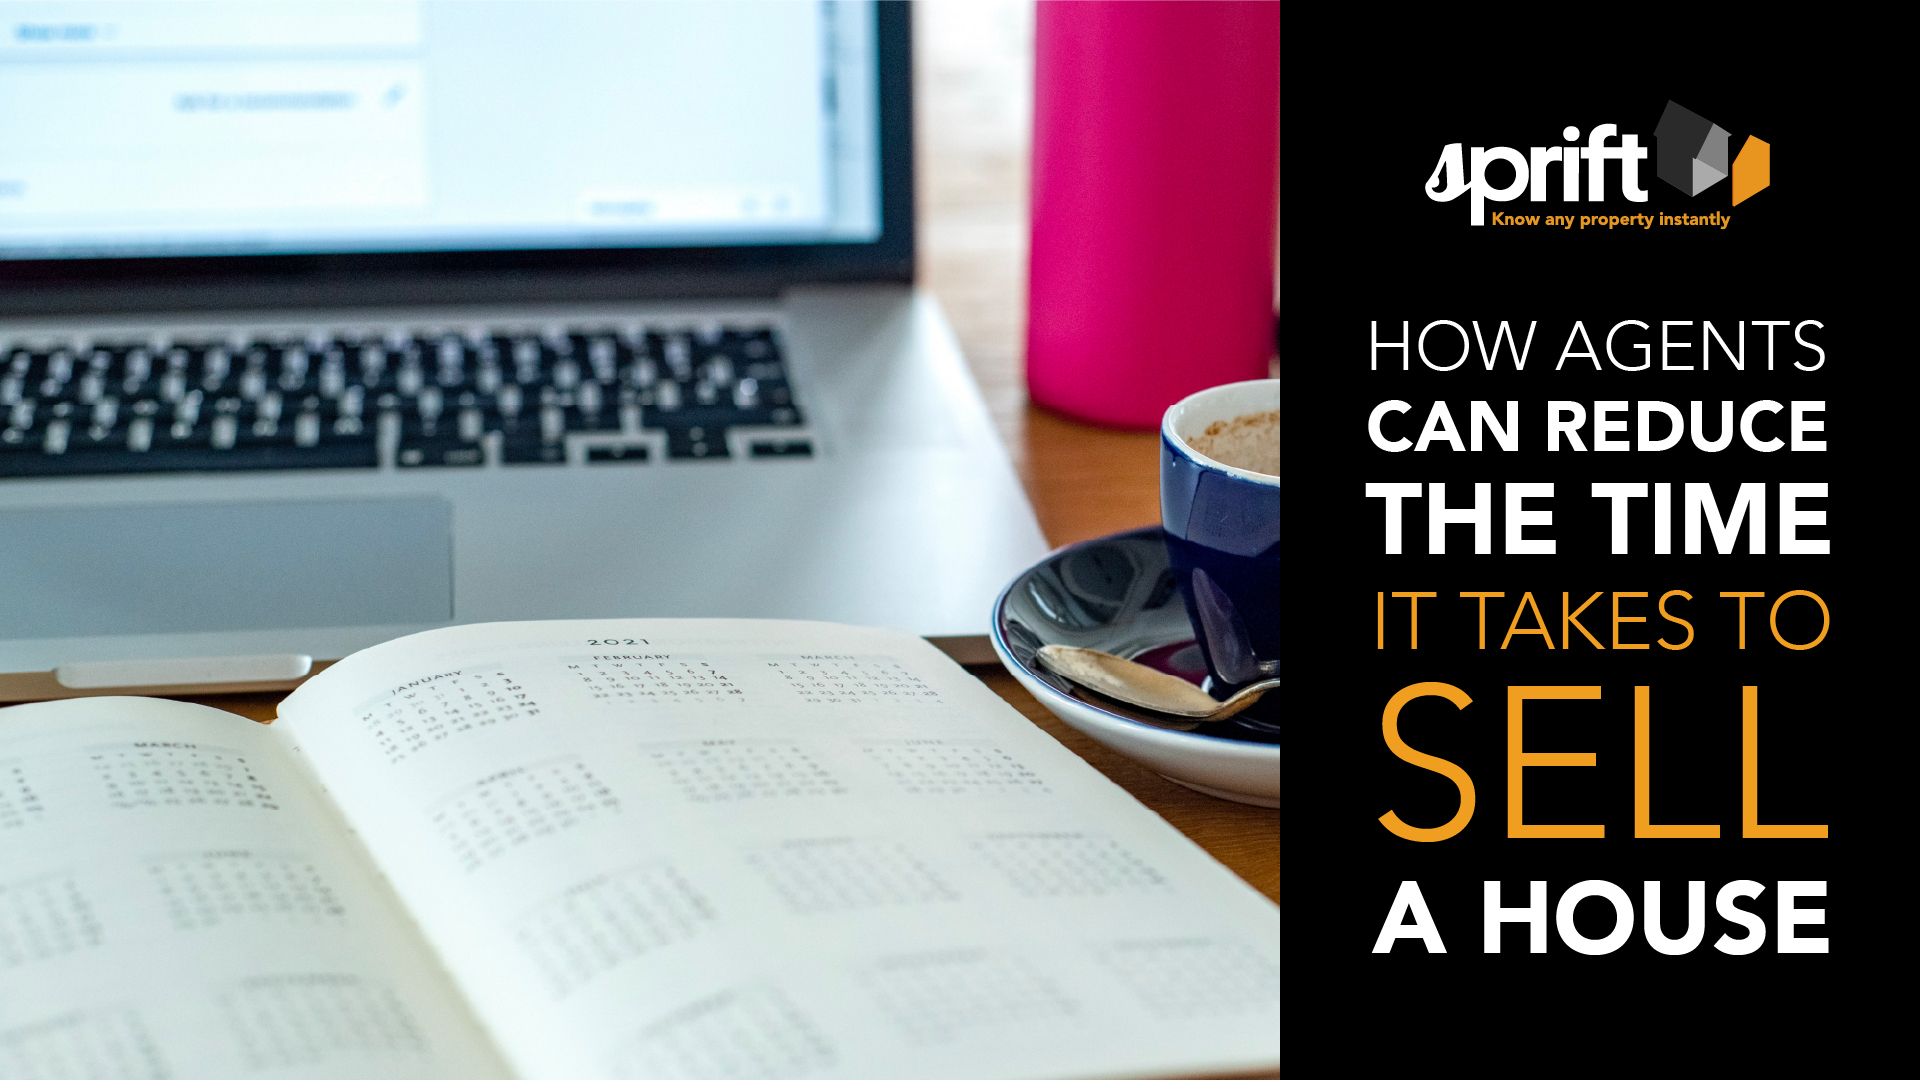 Calculating-average-time-to-sell-a-house-laptop-wooden-table-calendar